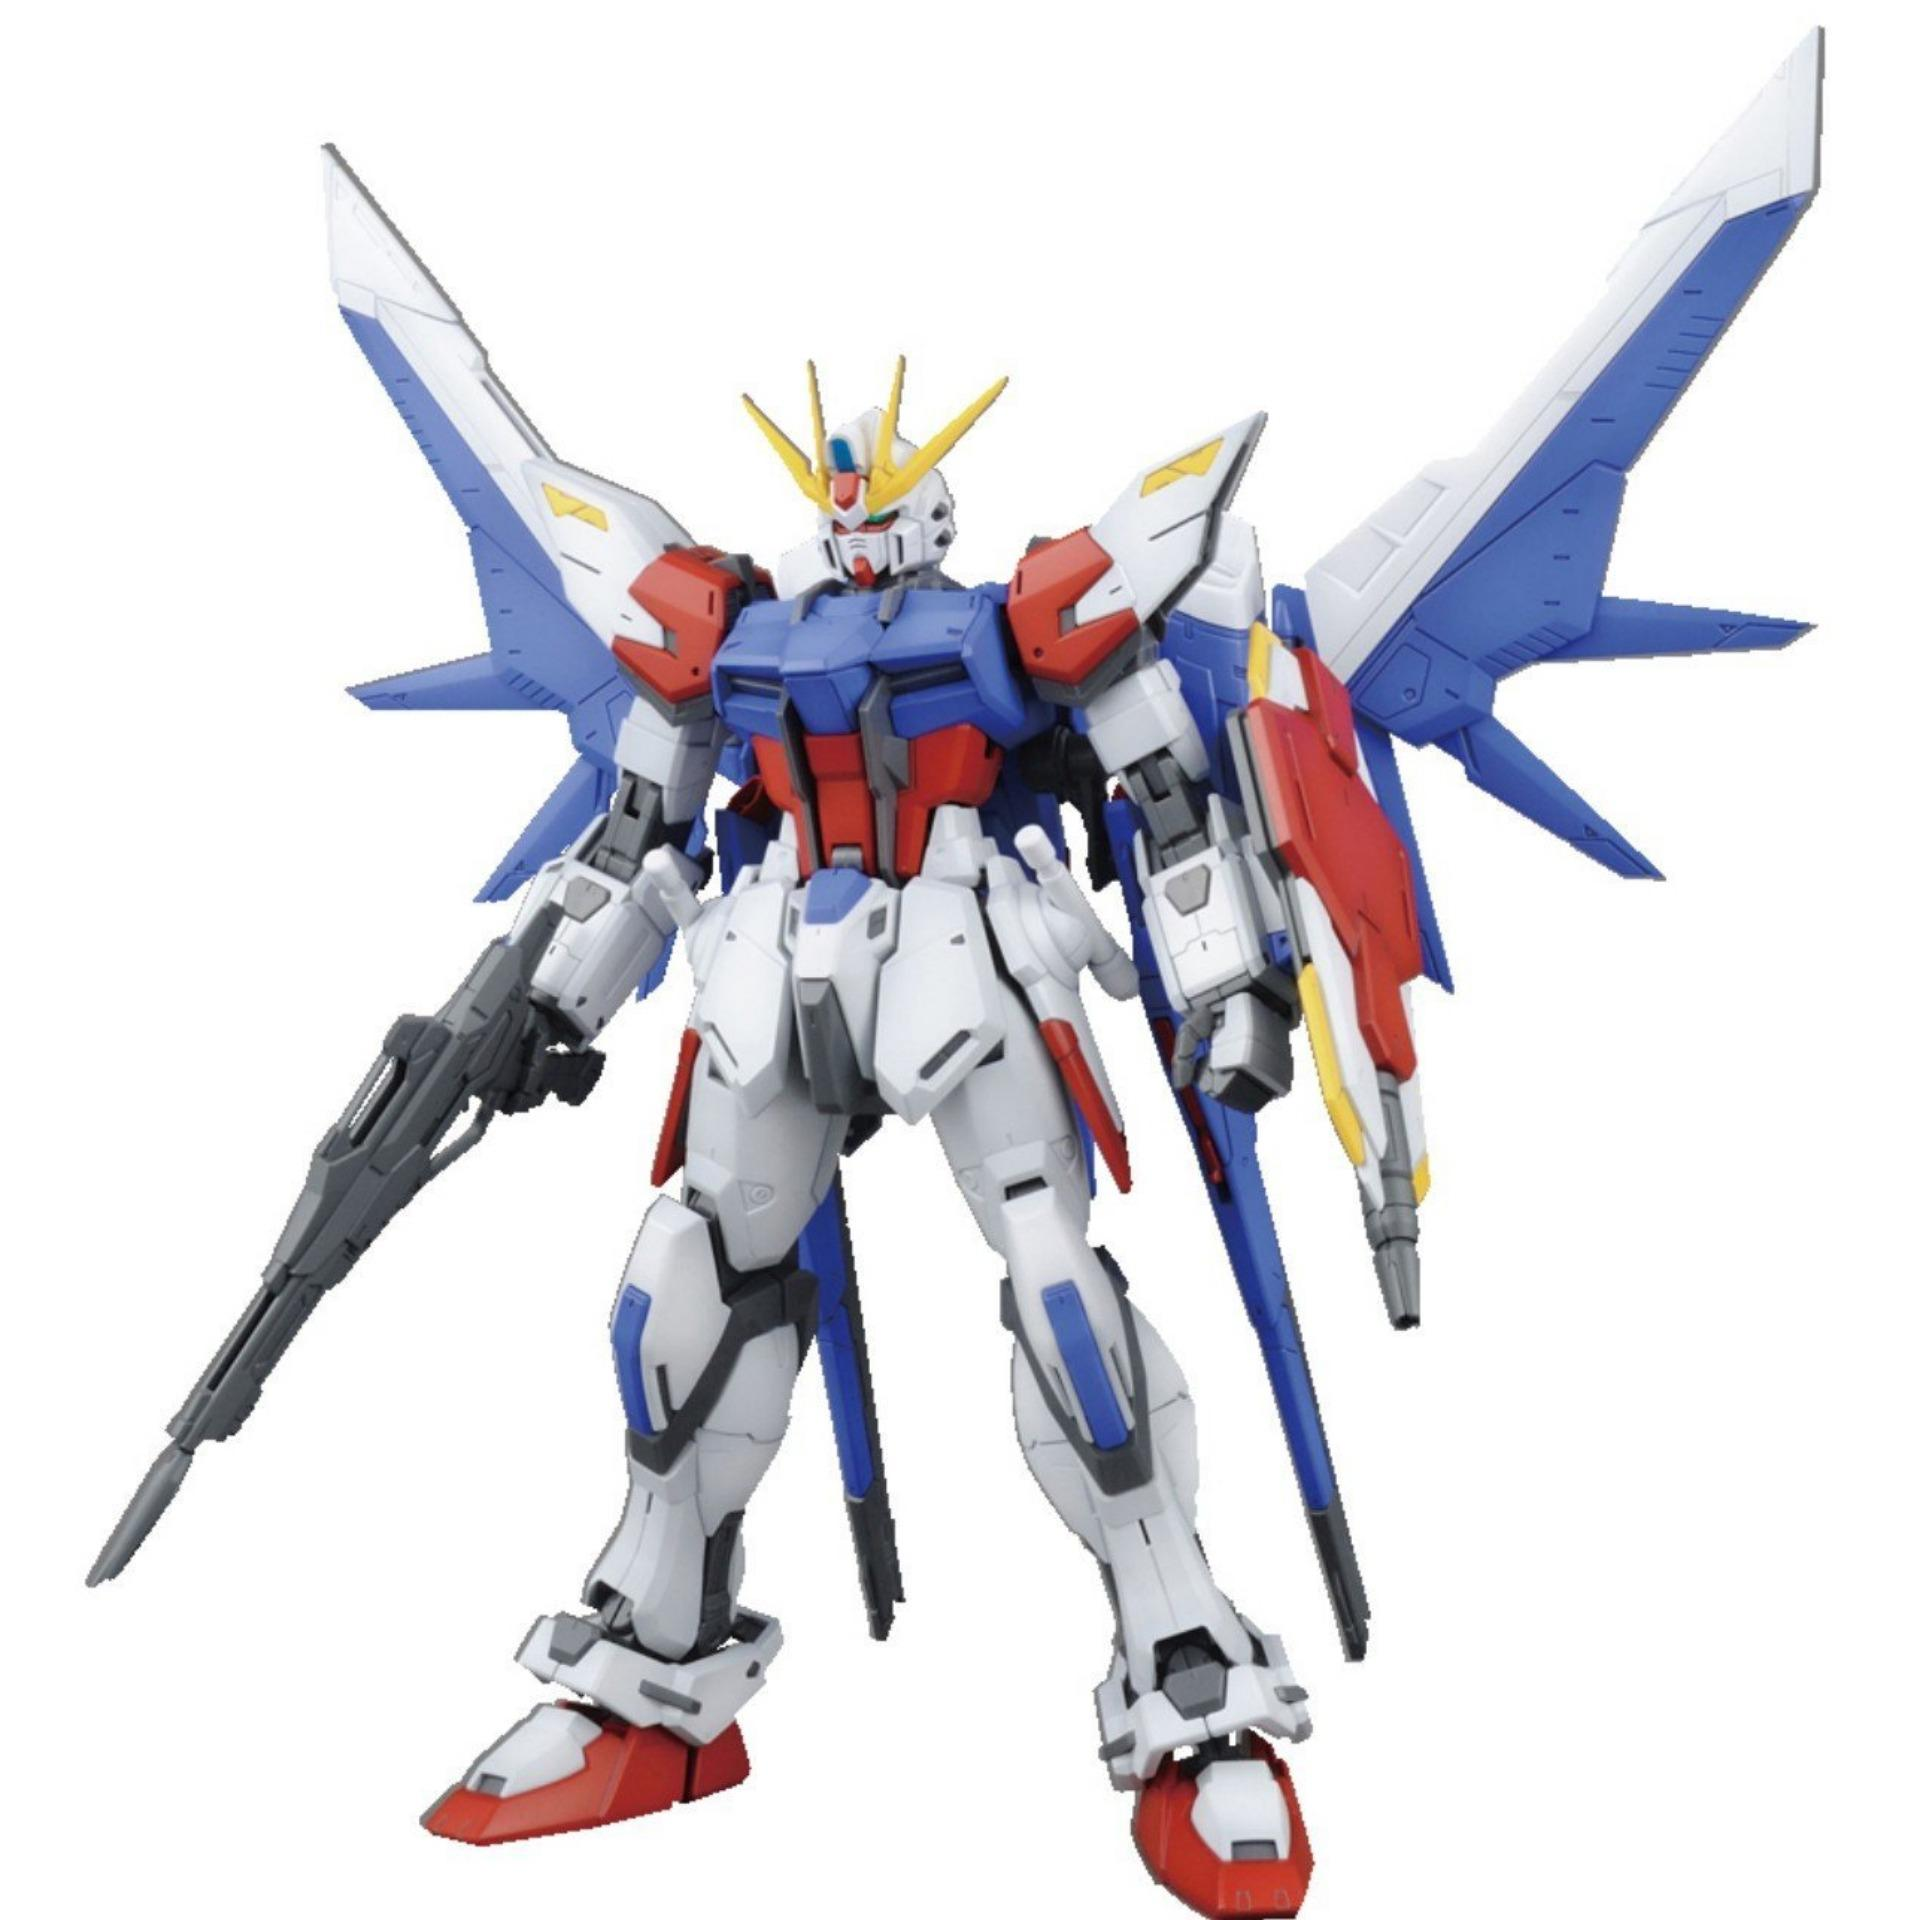 Beli Daban 1 100 Mg Build Strike Gundam Full Package Daban Model Dengan Harga Terjangkau